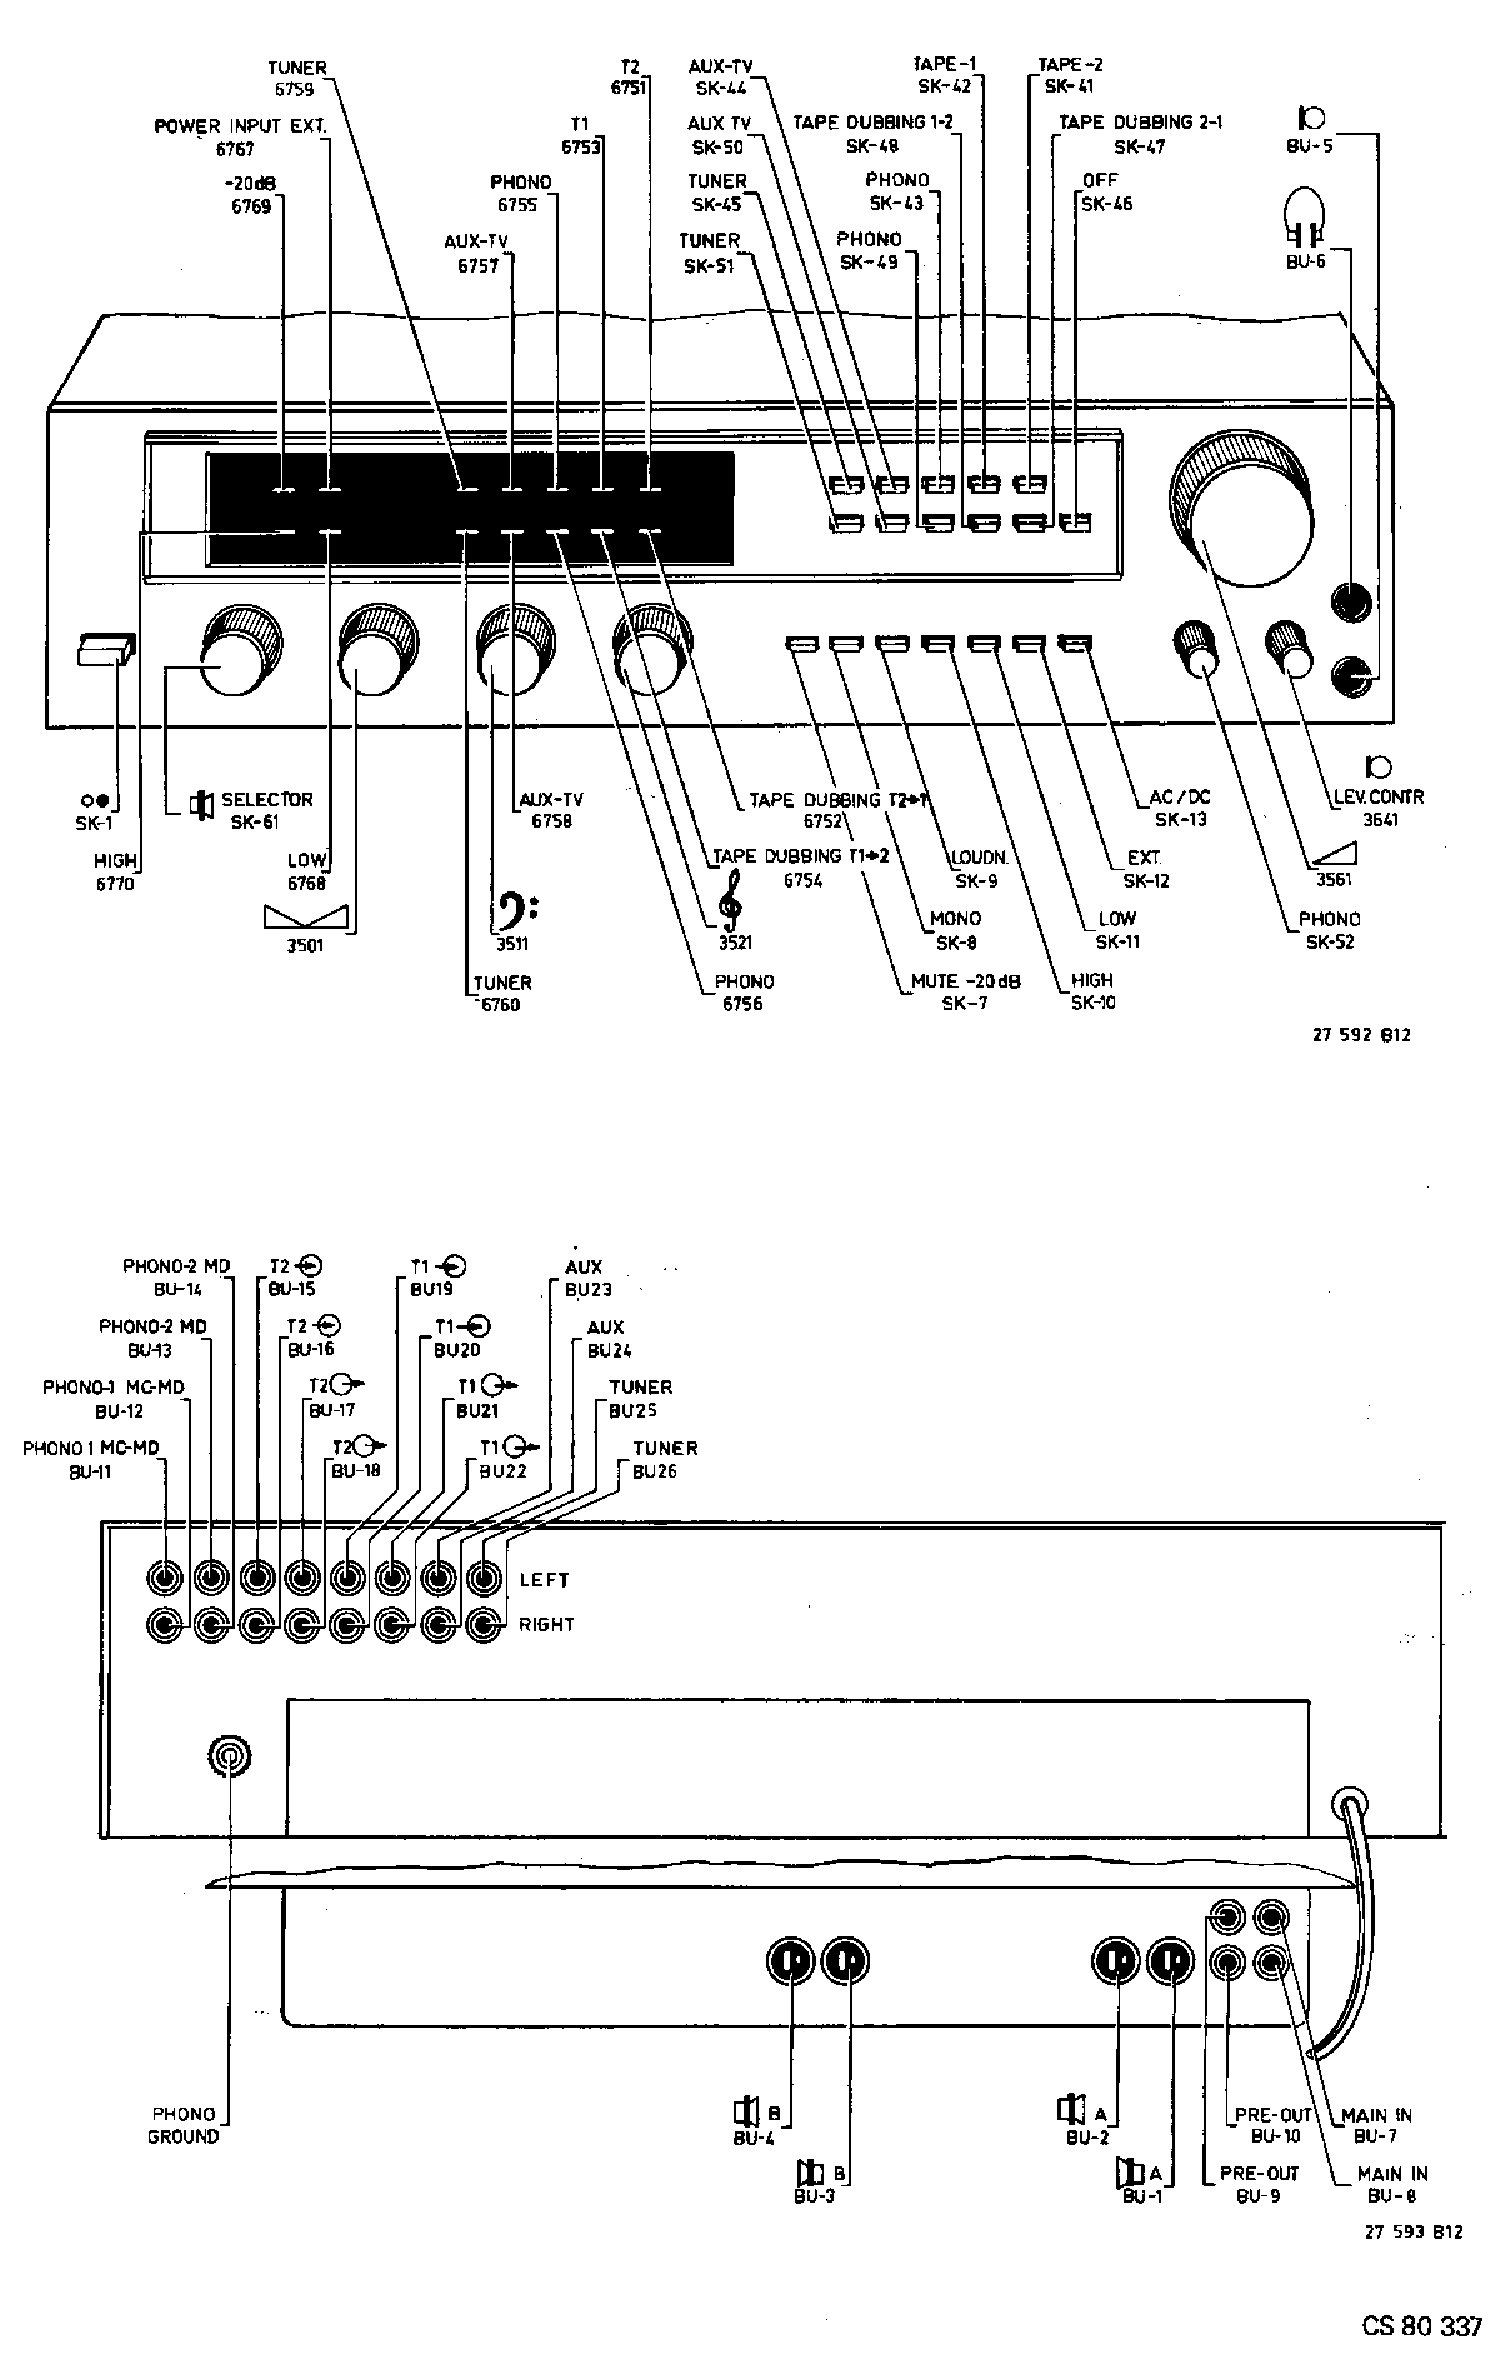 Boat Amplifier Wiring Diagram Manual Guide